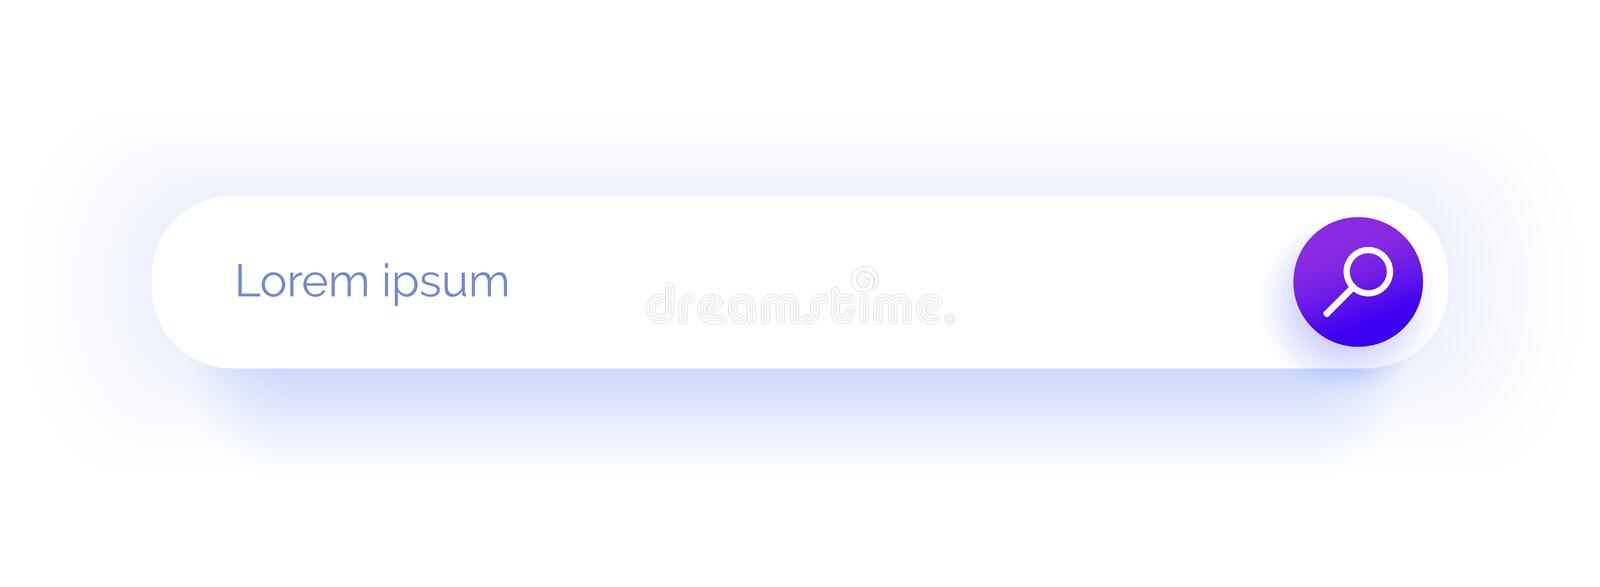 Search string. Input field. Web design.Purple icon. Search string. Input field. Web design. The magnifying glass icon in the fashion purple color gradient royalty free illustration